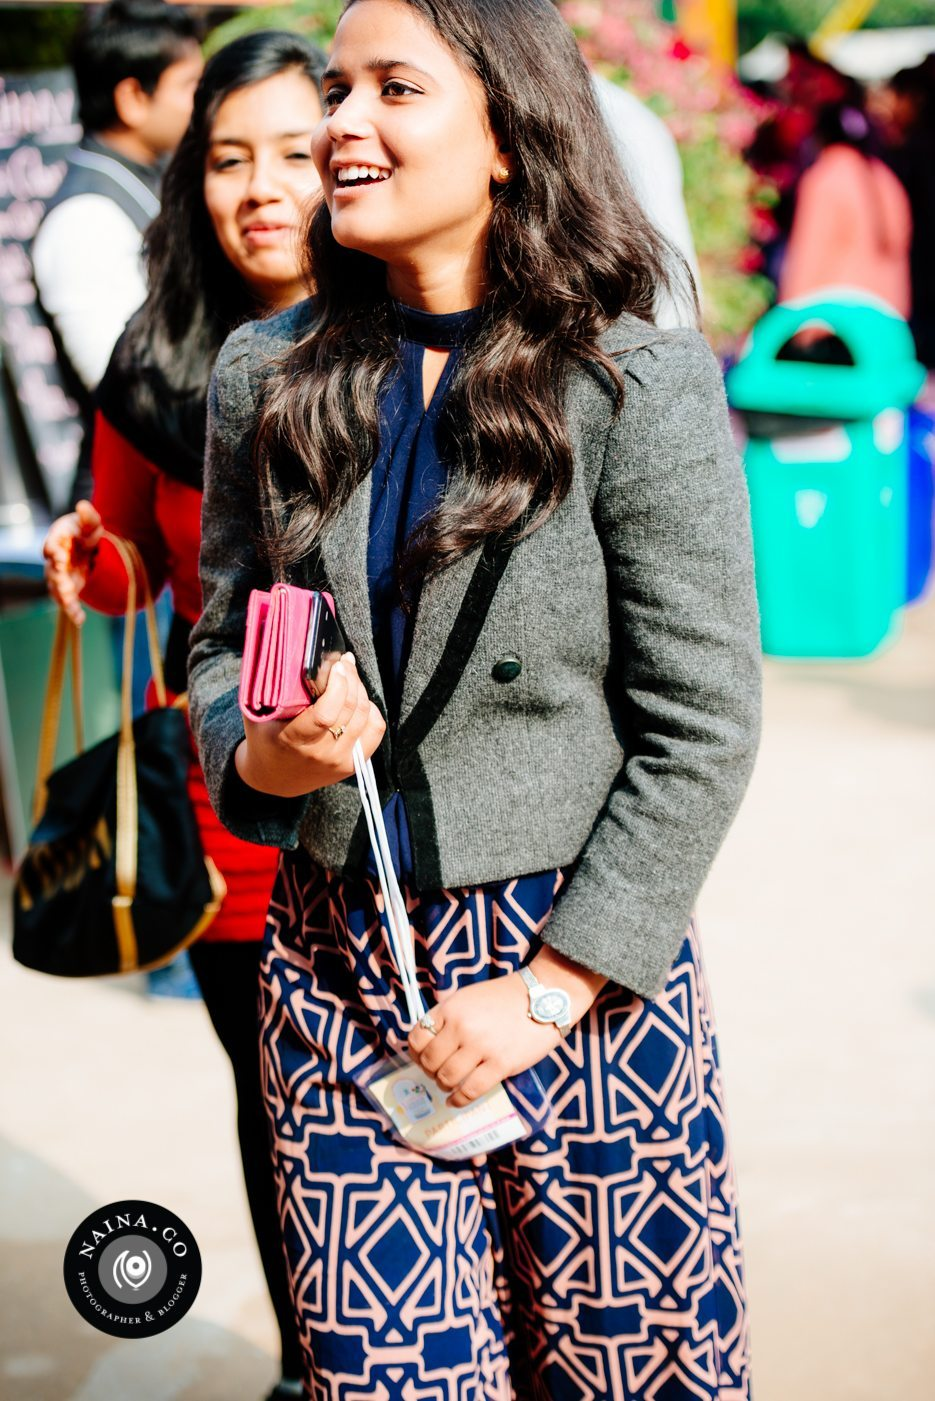 Naina.co-Raconteuse-Visuelle-Photographer-Blogger-Storyteller-Luxury-Lifestyle-January-2015-Jaipur-Literature-Festival-StRegis-LeMeridien-ZeeJLF-EyesForStreetStyle-39